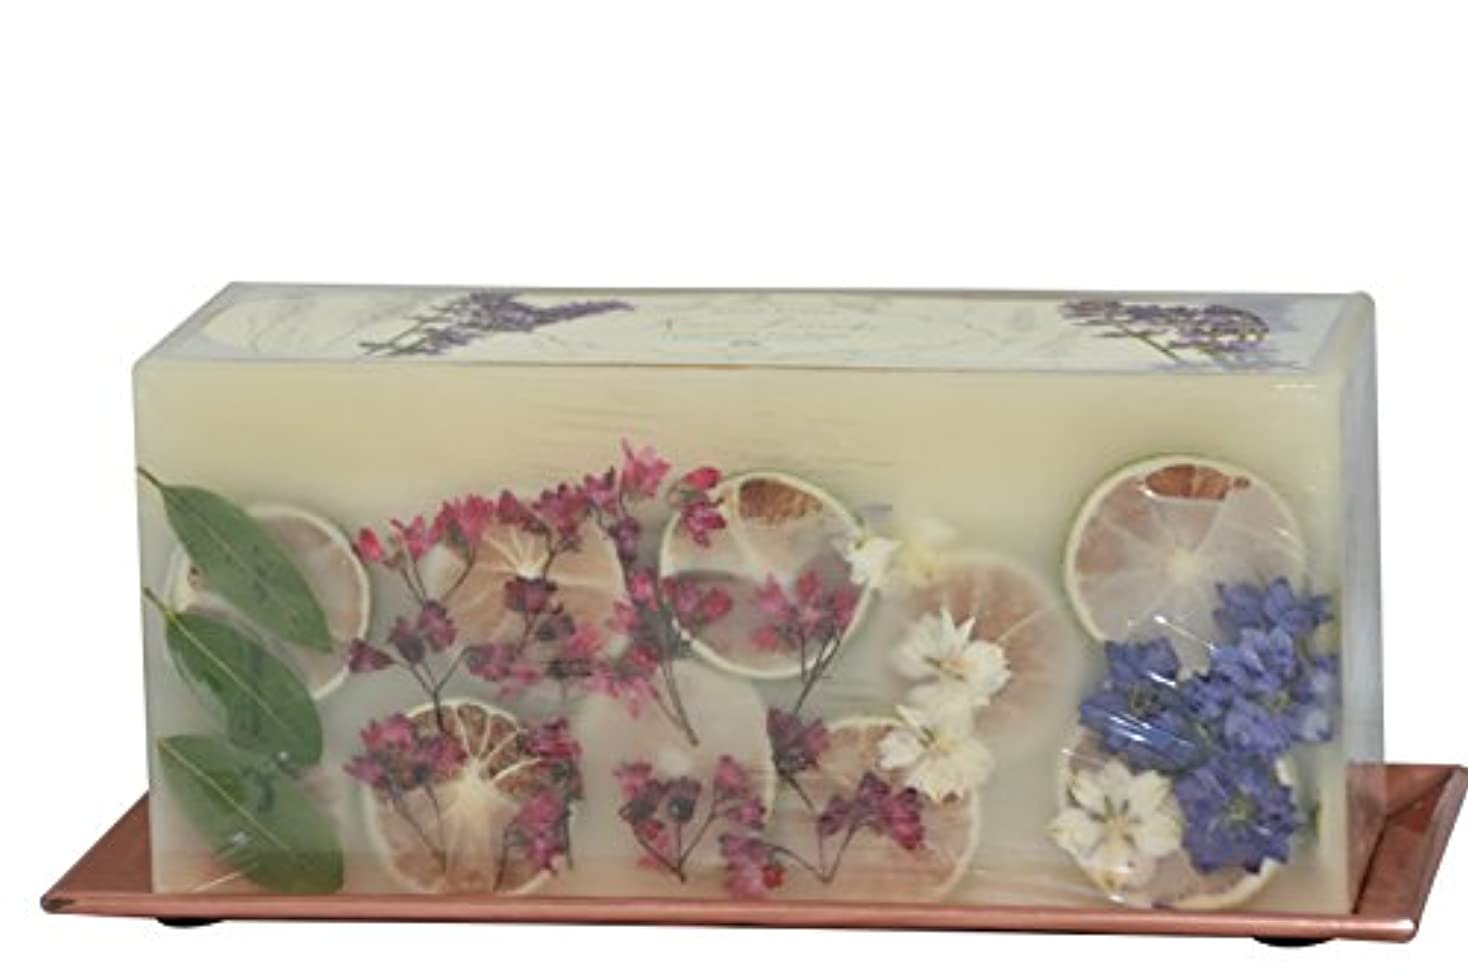 離す自明巡礼者(Roman Lavender) - Rosy Rings 3-Wick Brick Botanical Candle with Hammered Rose Gold Tray (Roman Lavender)